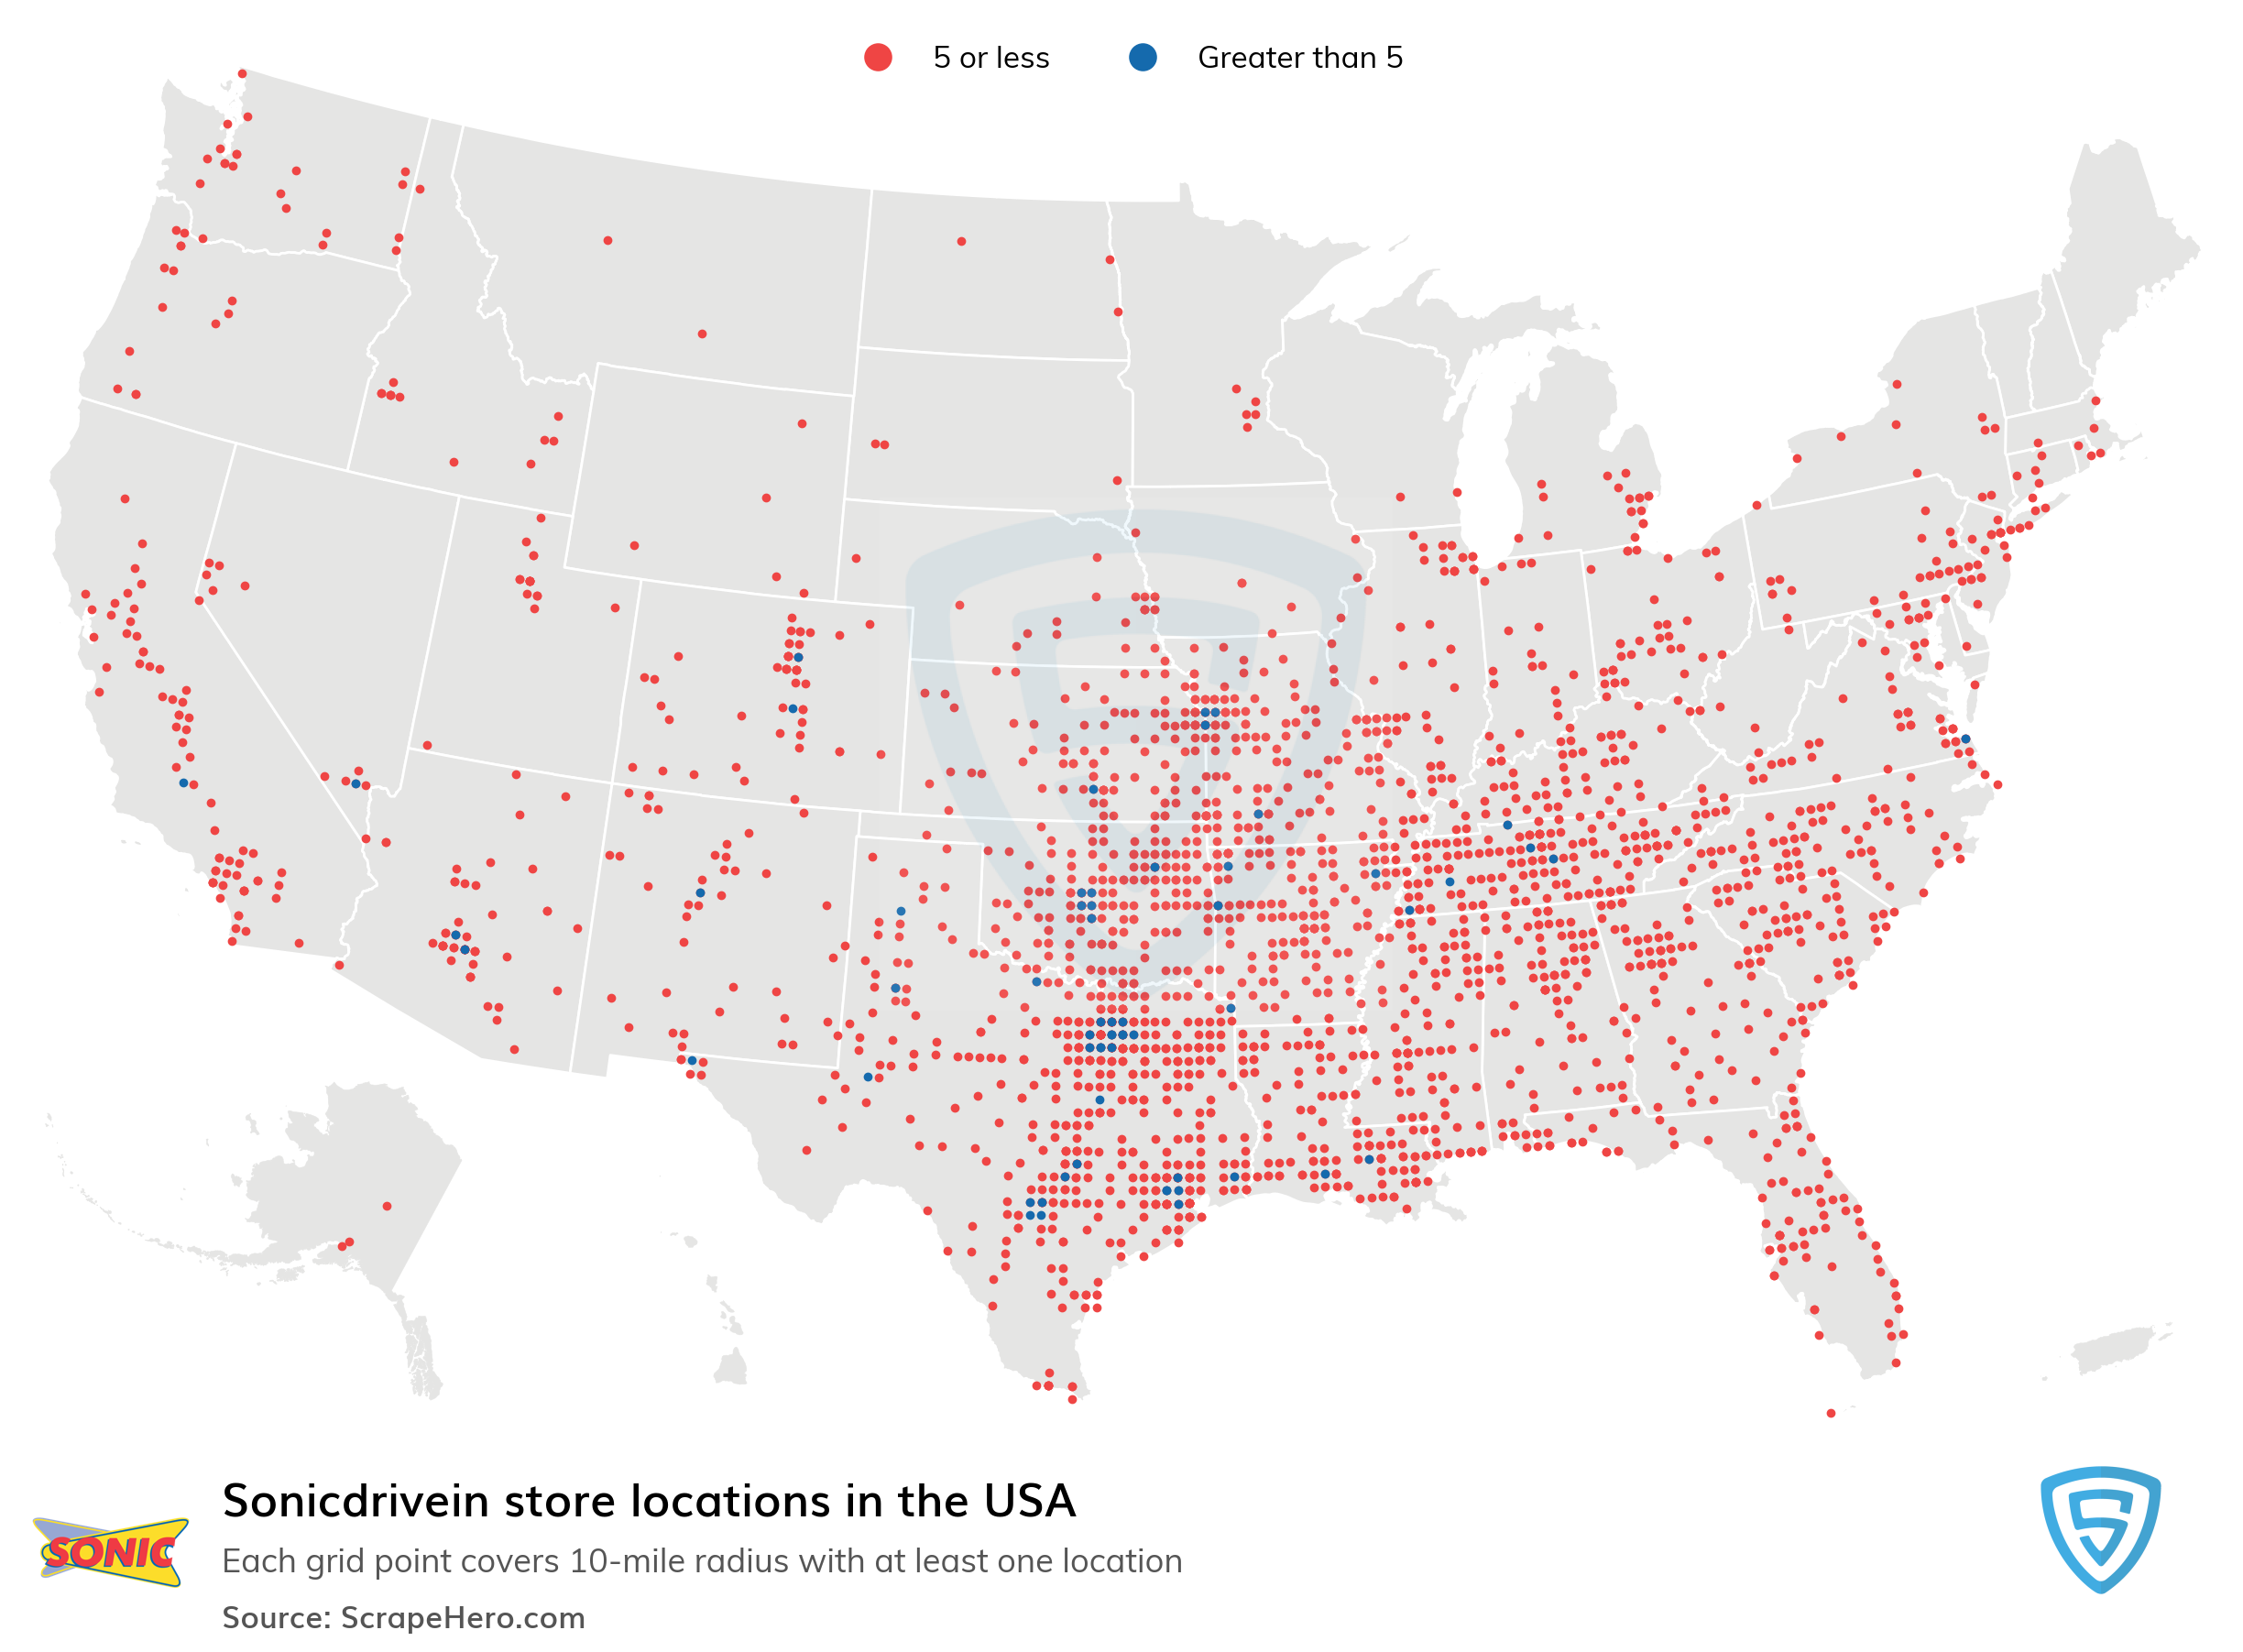 Sonic Drive-In Store Locations in the USA